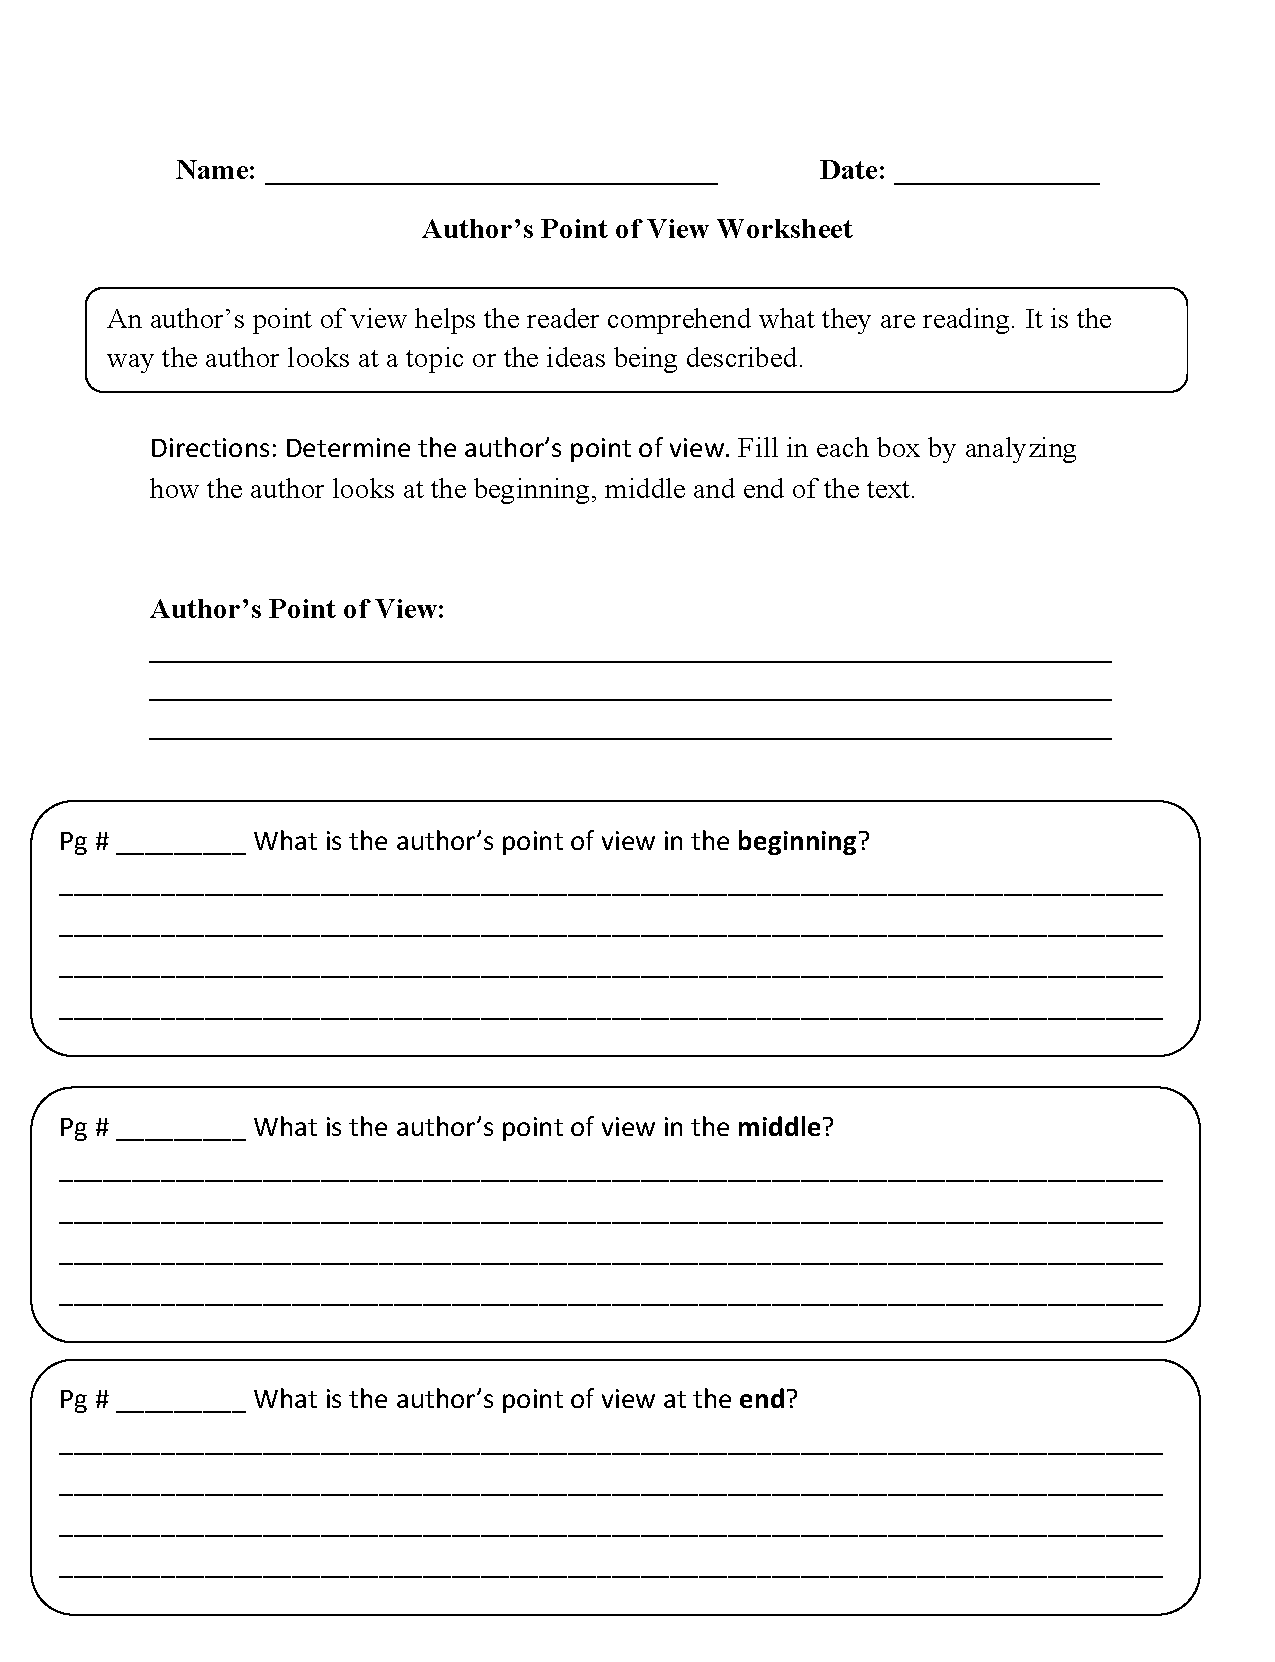 Proatmealus  Prepossessing Englishlinxcom  Point Of View Worksheets With Handsome Point Of View Worksheets With Amusing Trace Letter A Worksheet Also Martin Luther King Free Worksheets In Addition Fraction Worksheet For Grade  And Maths Worksheets Preschool As Well As Practice Alphabet Worksheets Additionally Anne Of Green Gables Worksheets From Englishlinxcom With Proatmealus  Handsome Englishlinxcom  Point Of View Worksheets With Amusing Point Of View Worksheets And Prepossessing Trace Letter A Worksheet Also Martin Luther King Free Worksheets In Addition Fraction Worksheet For Grade  From Englishlinxcom